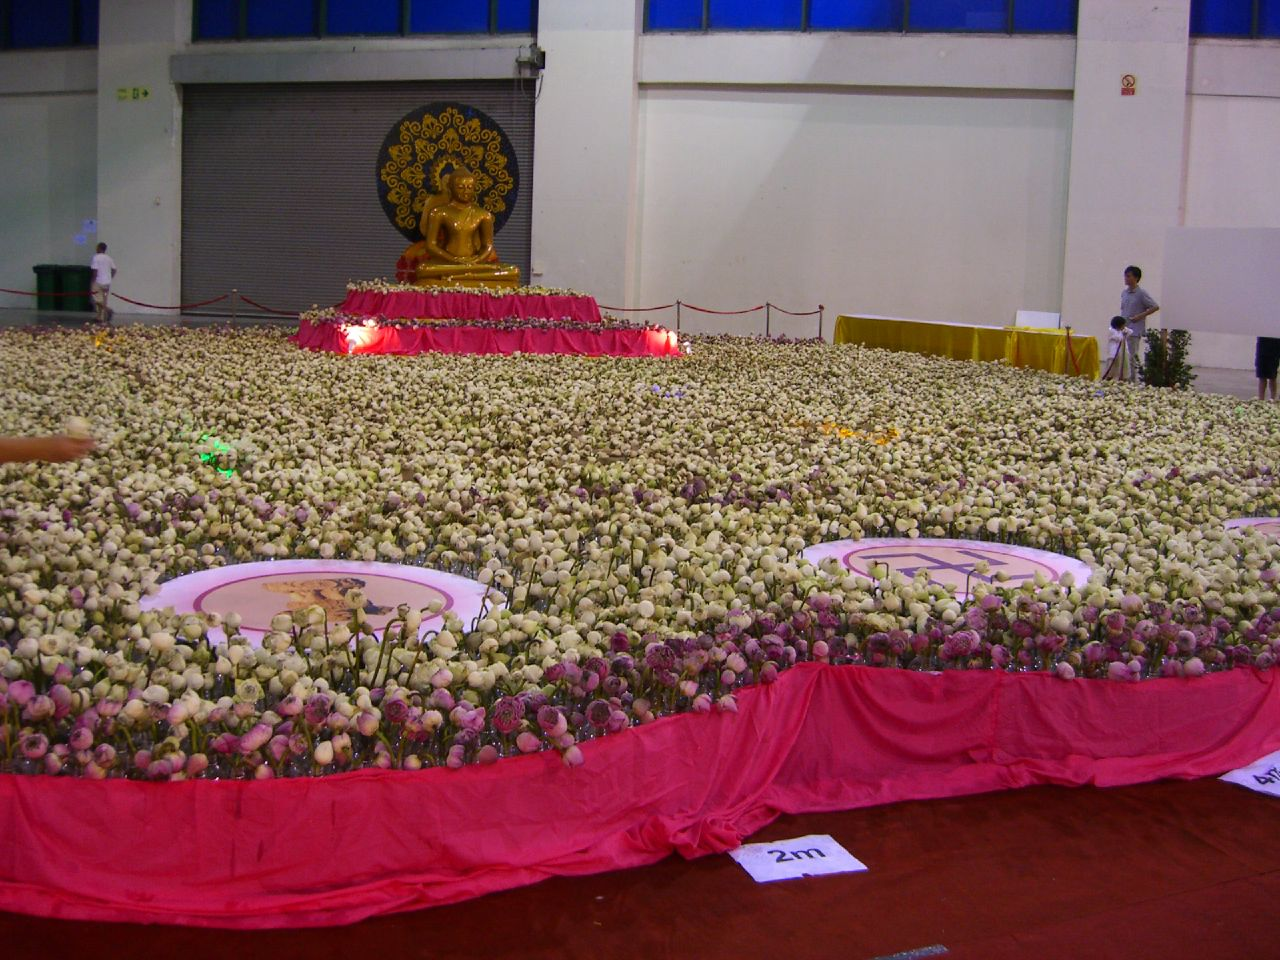 9th June - whole area completely filled with lotus flowers